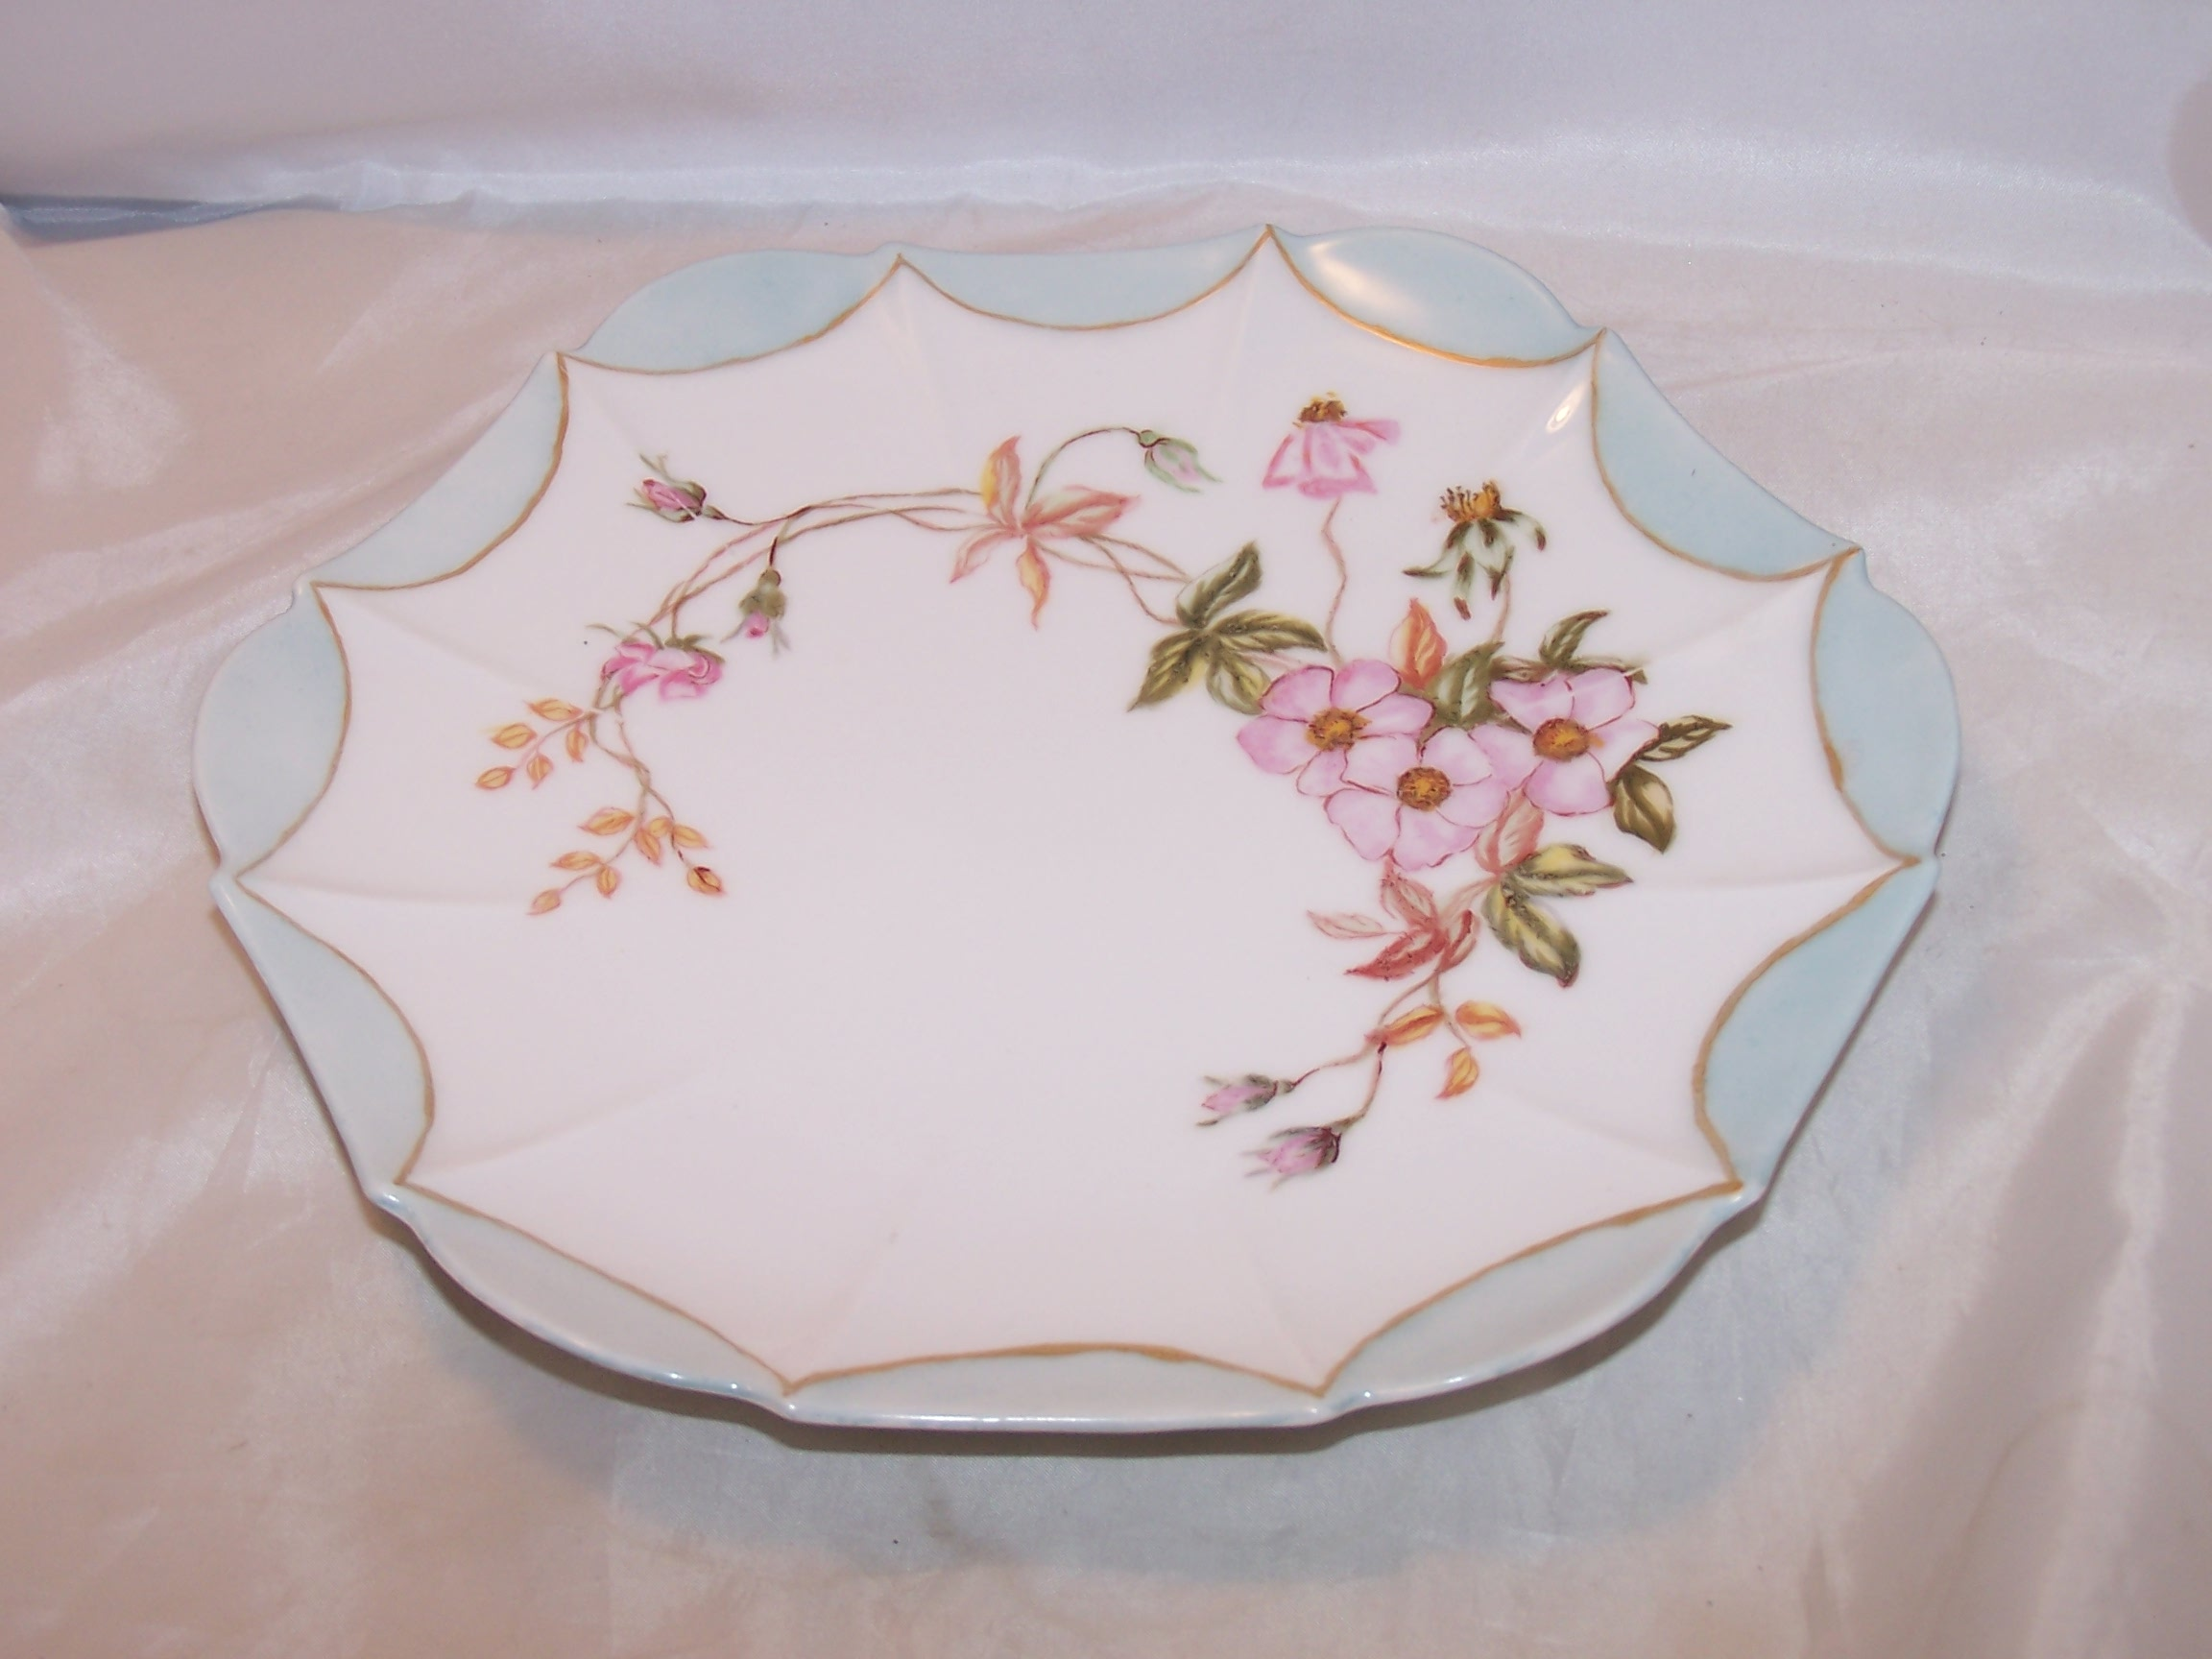 T&V Tressemanes & Vogt Climbing Rose Plate, Artist Signed, France